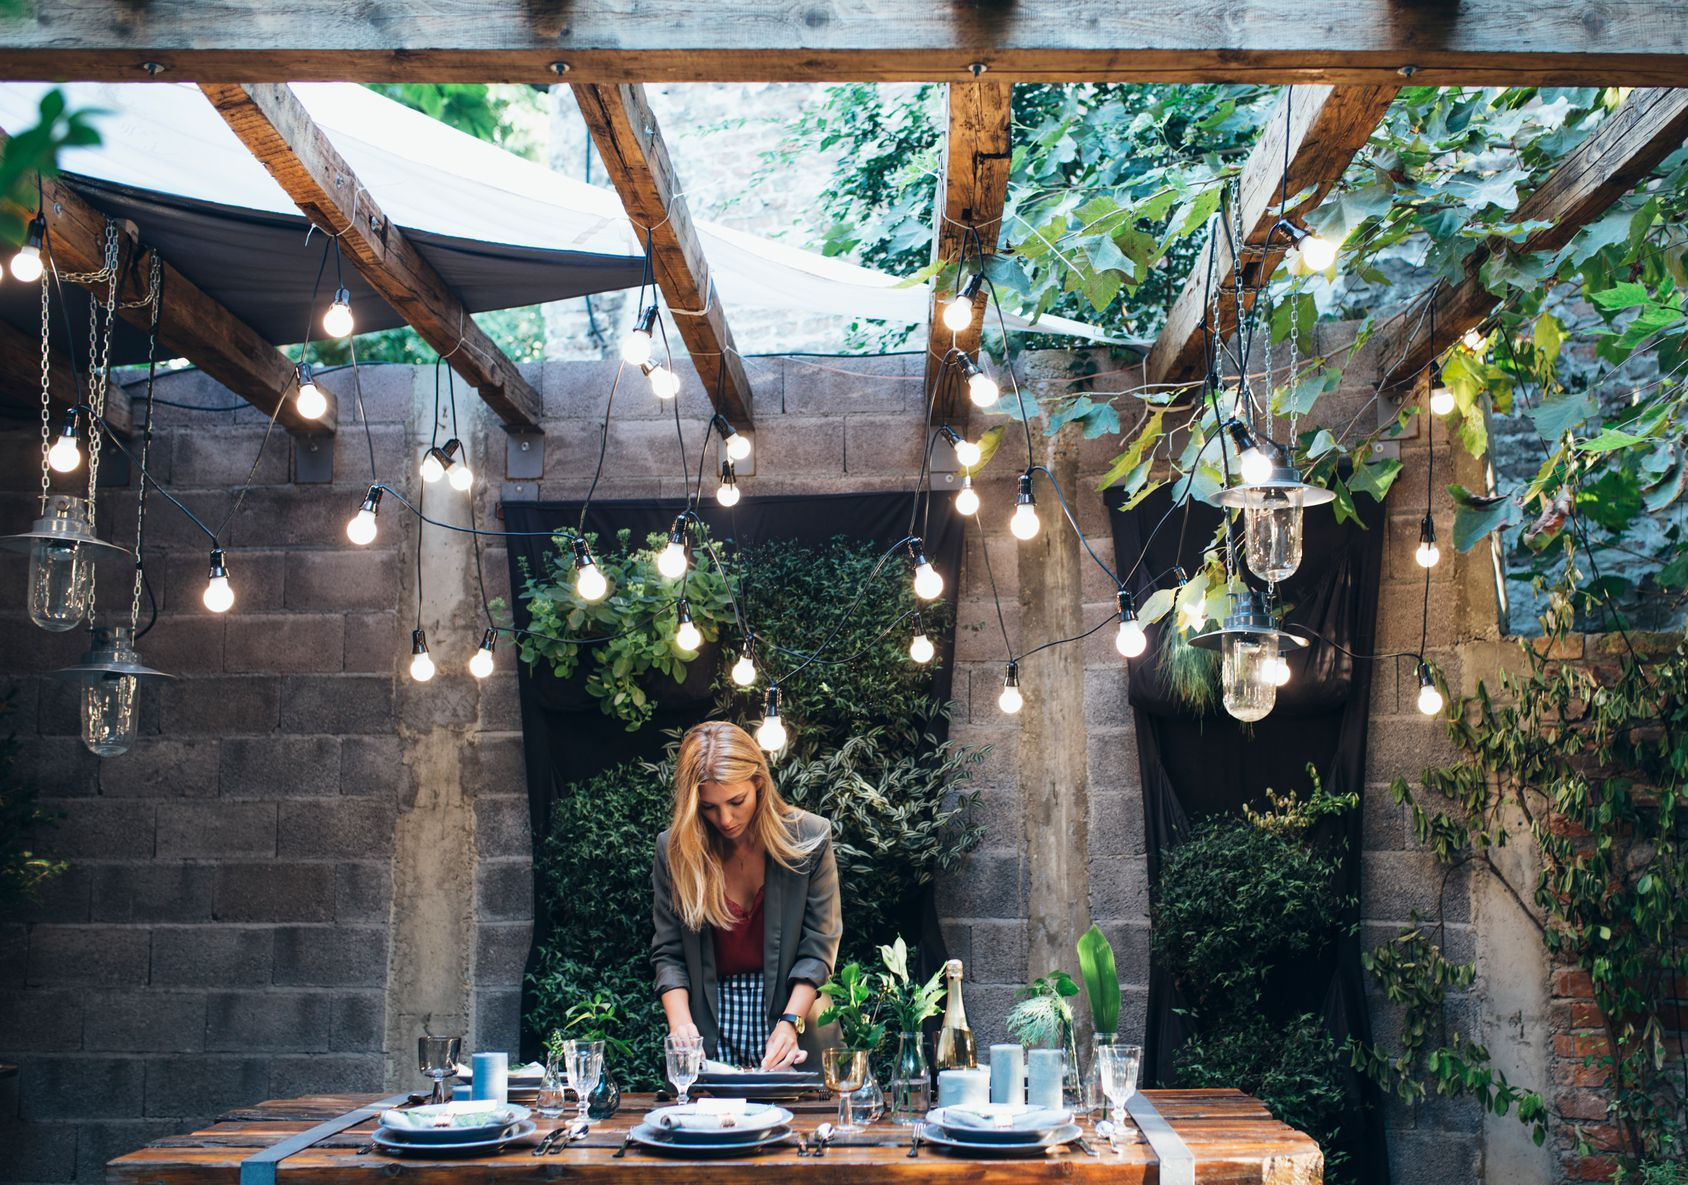 14 Outdoor Decorating Ideas for Small Spaces on Cool Backyard Decorations id=27581